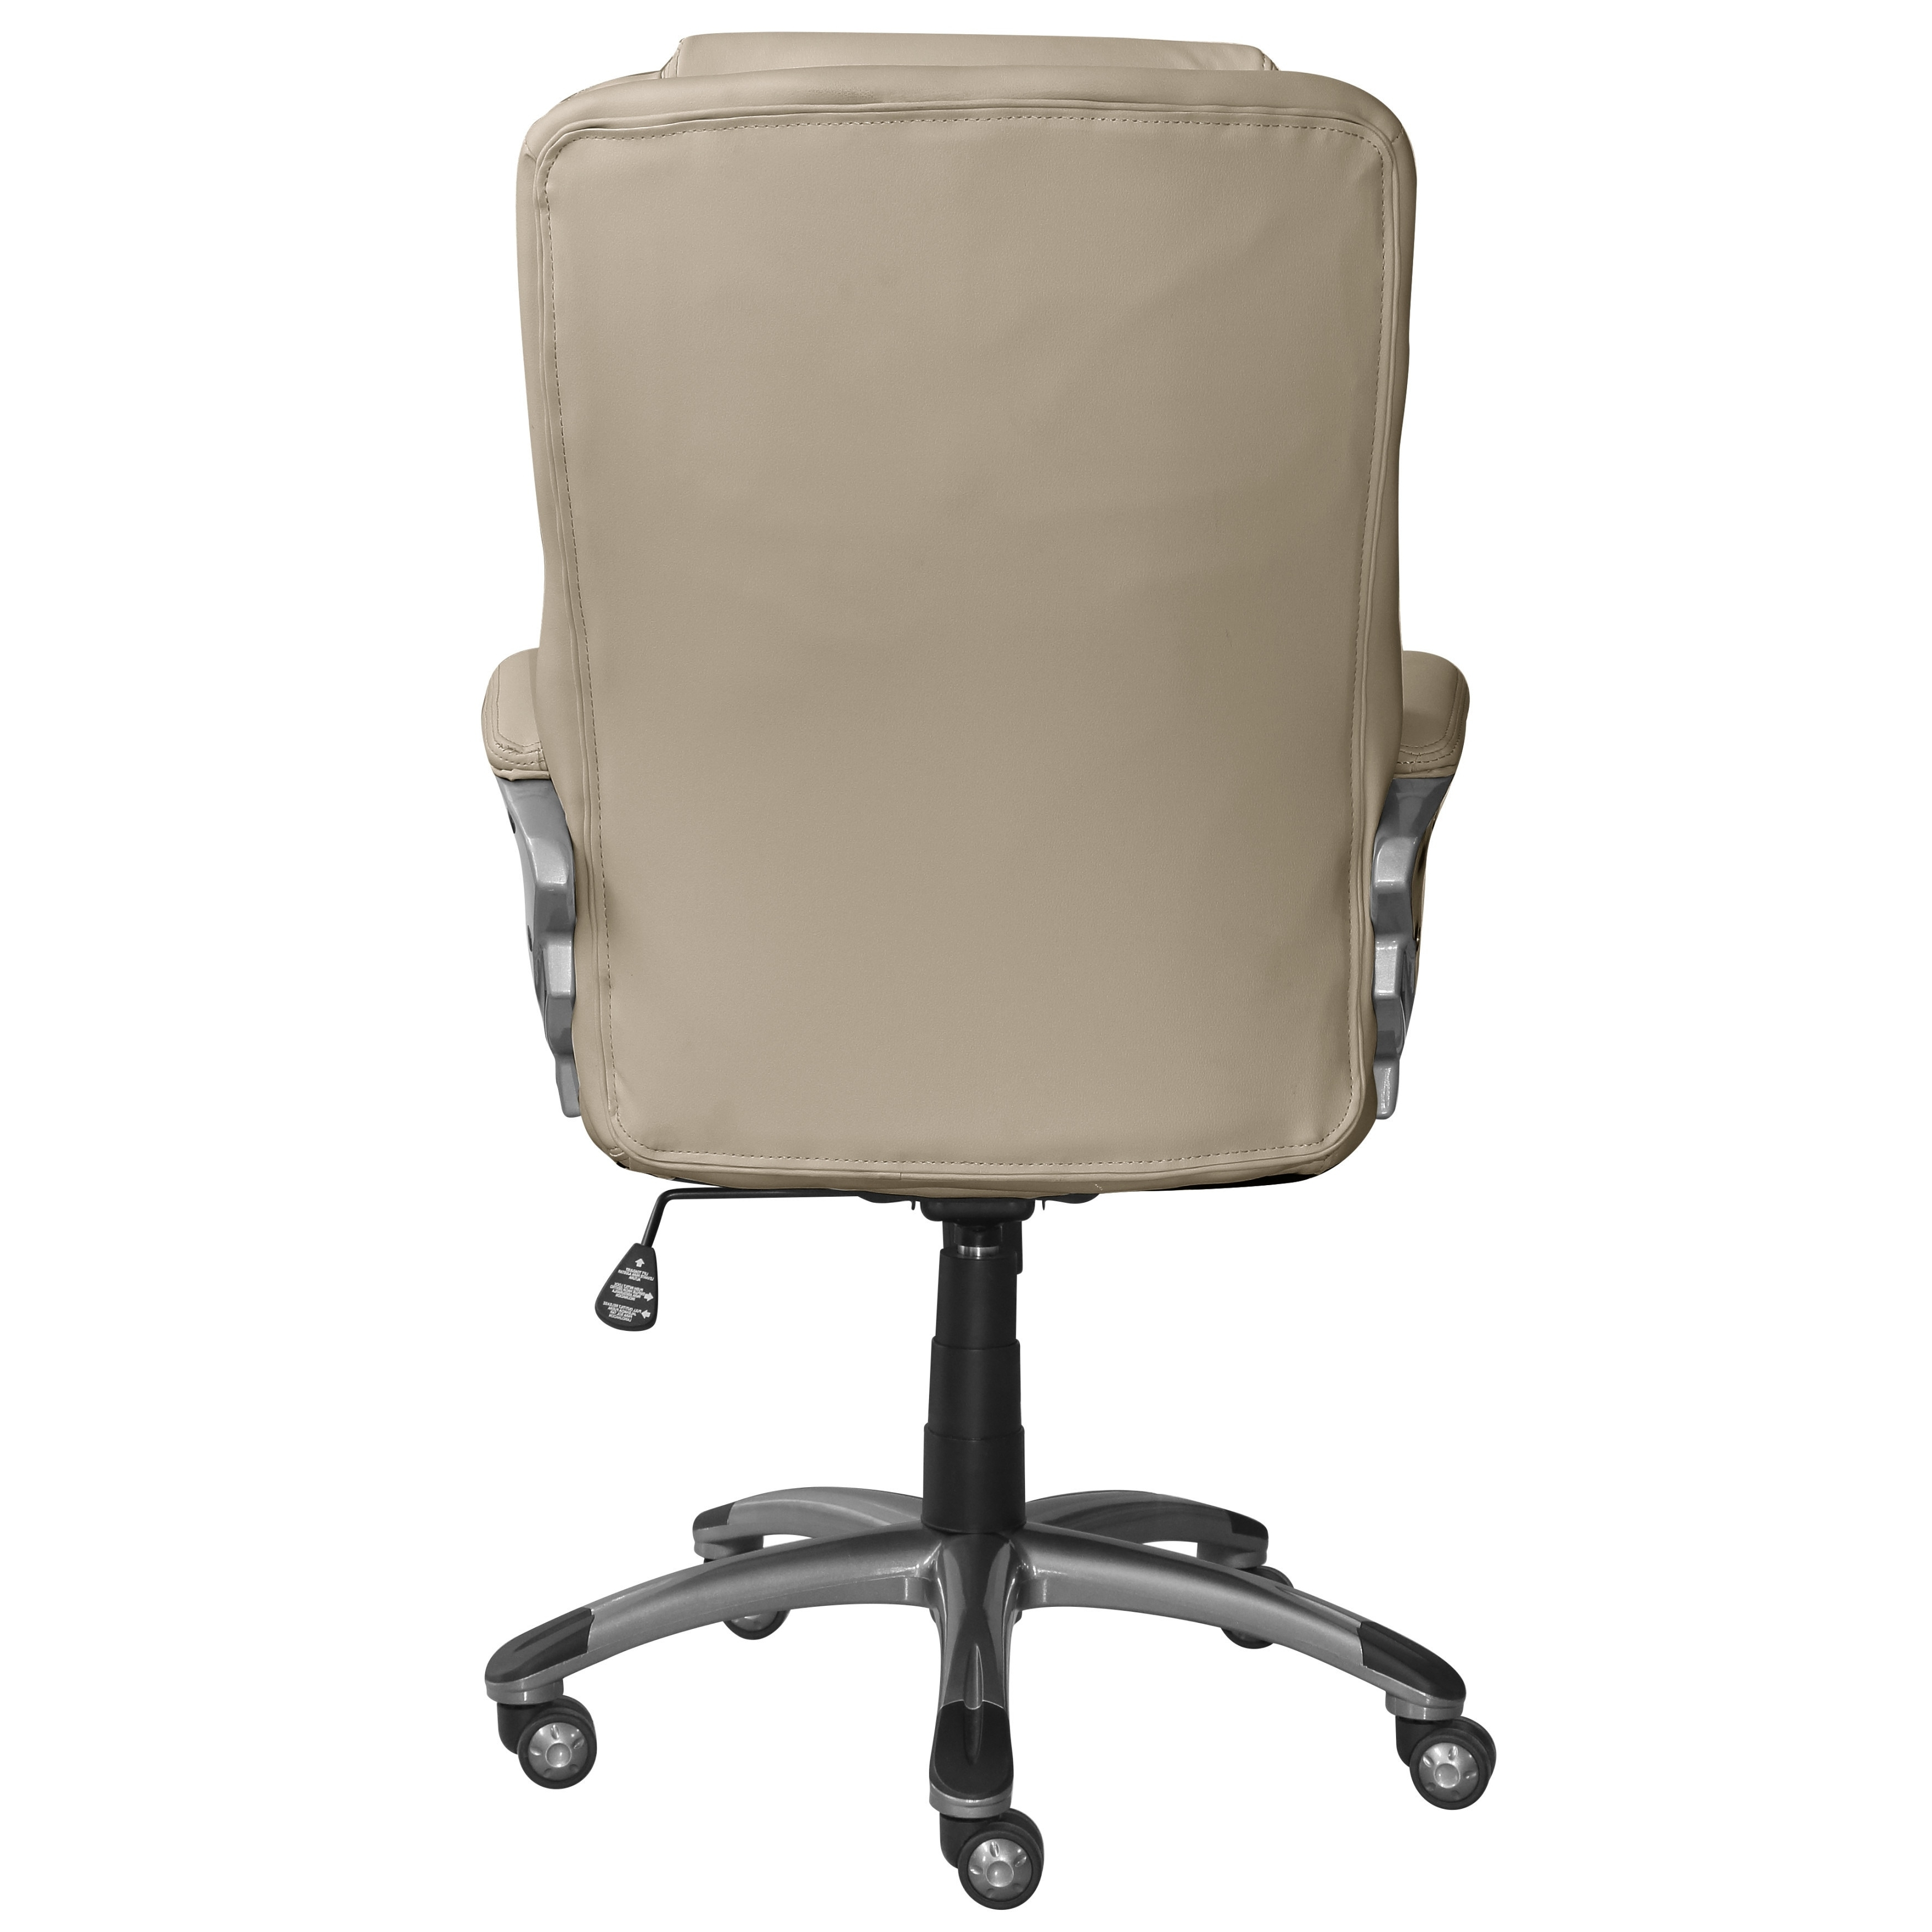 Serta Works Bonded Leather Executive Office Chair – Free Shipping Within Fashionable Light Beige Microfiber Executive Office Chairs (View 19 of 20)